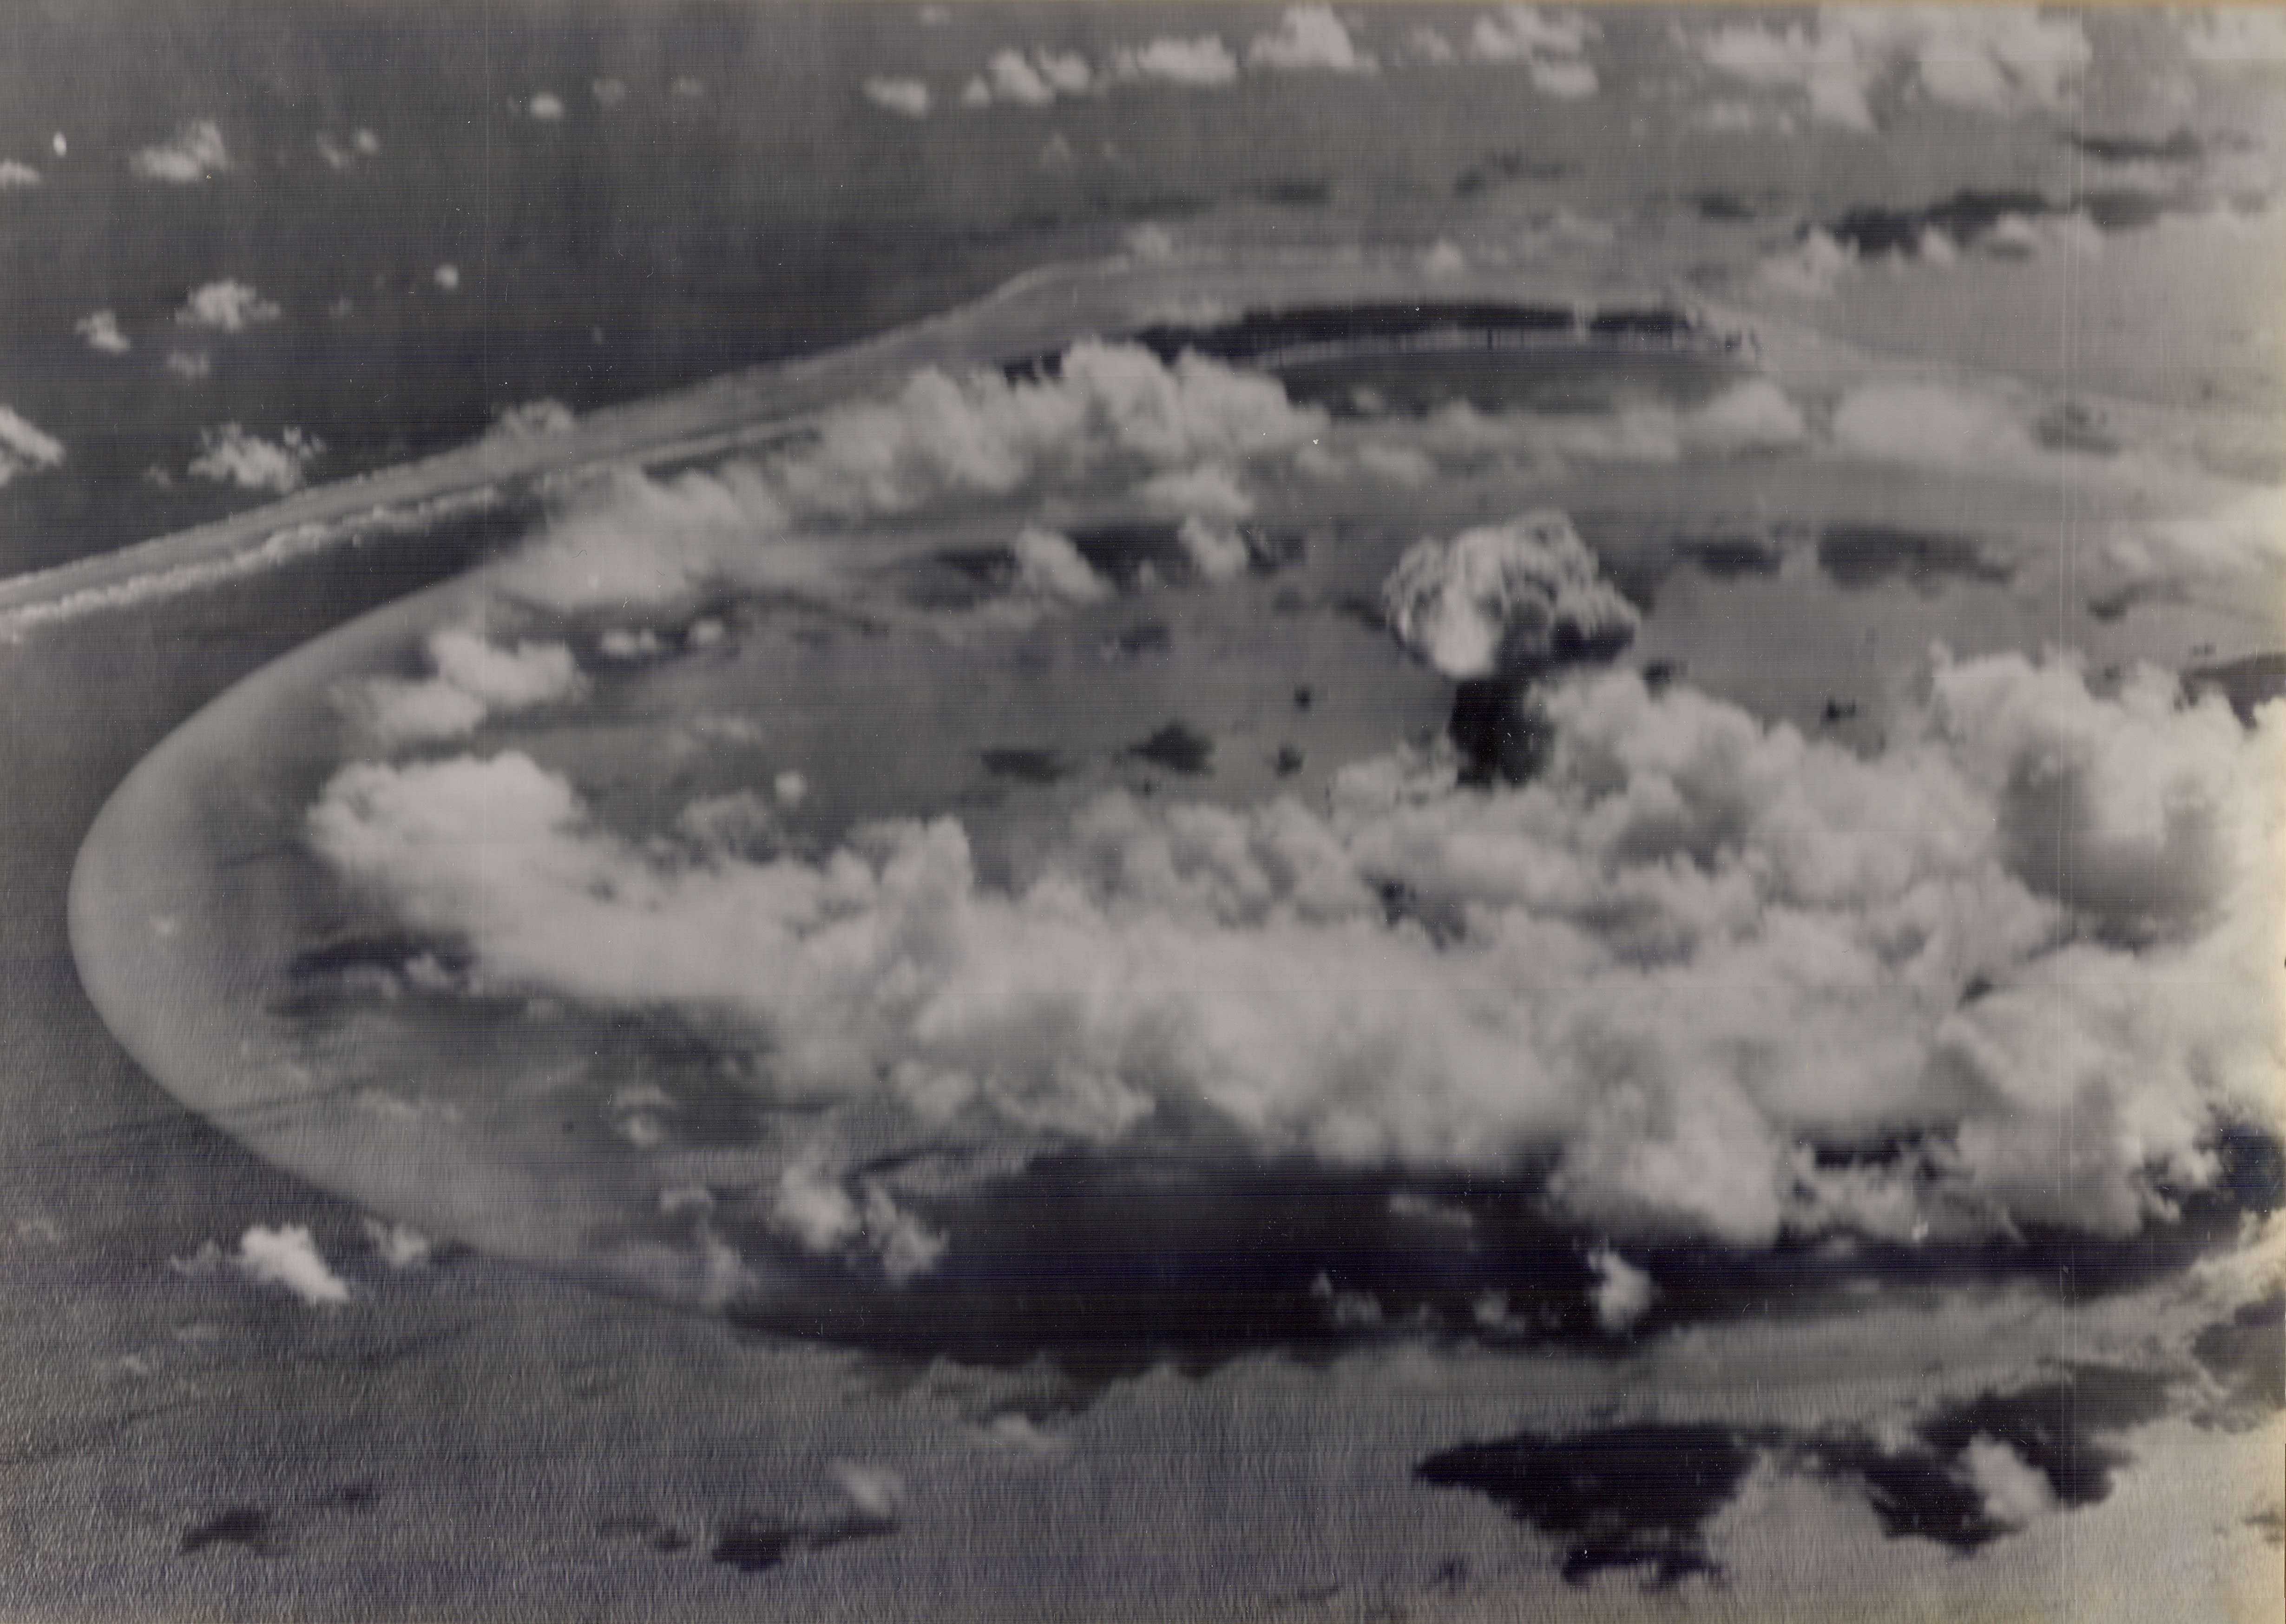 Nuclear Test Explosion From the Air, 1945-1946